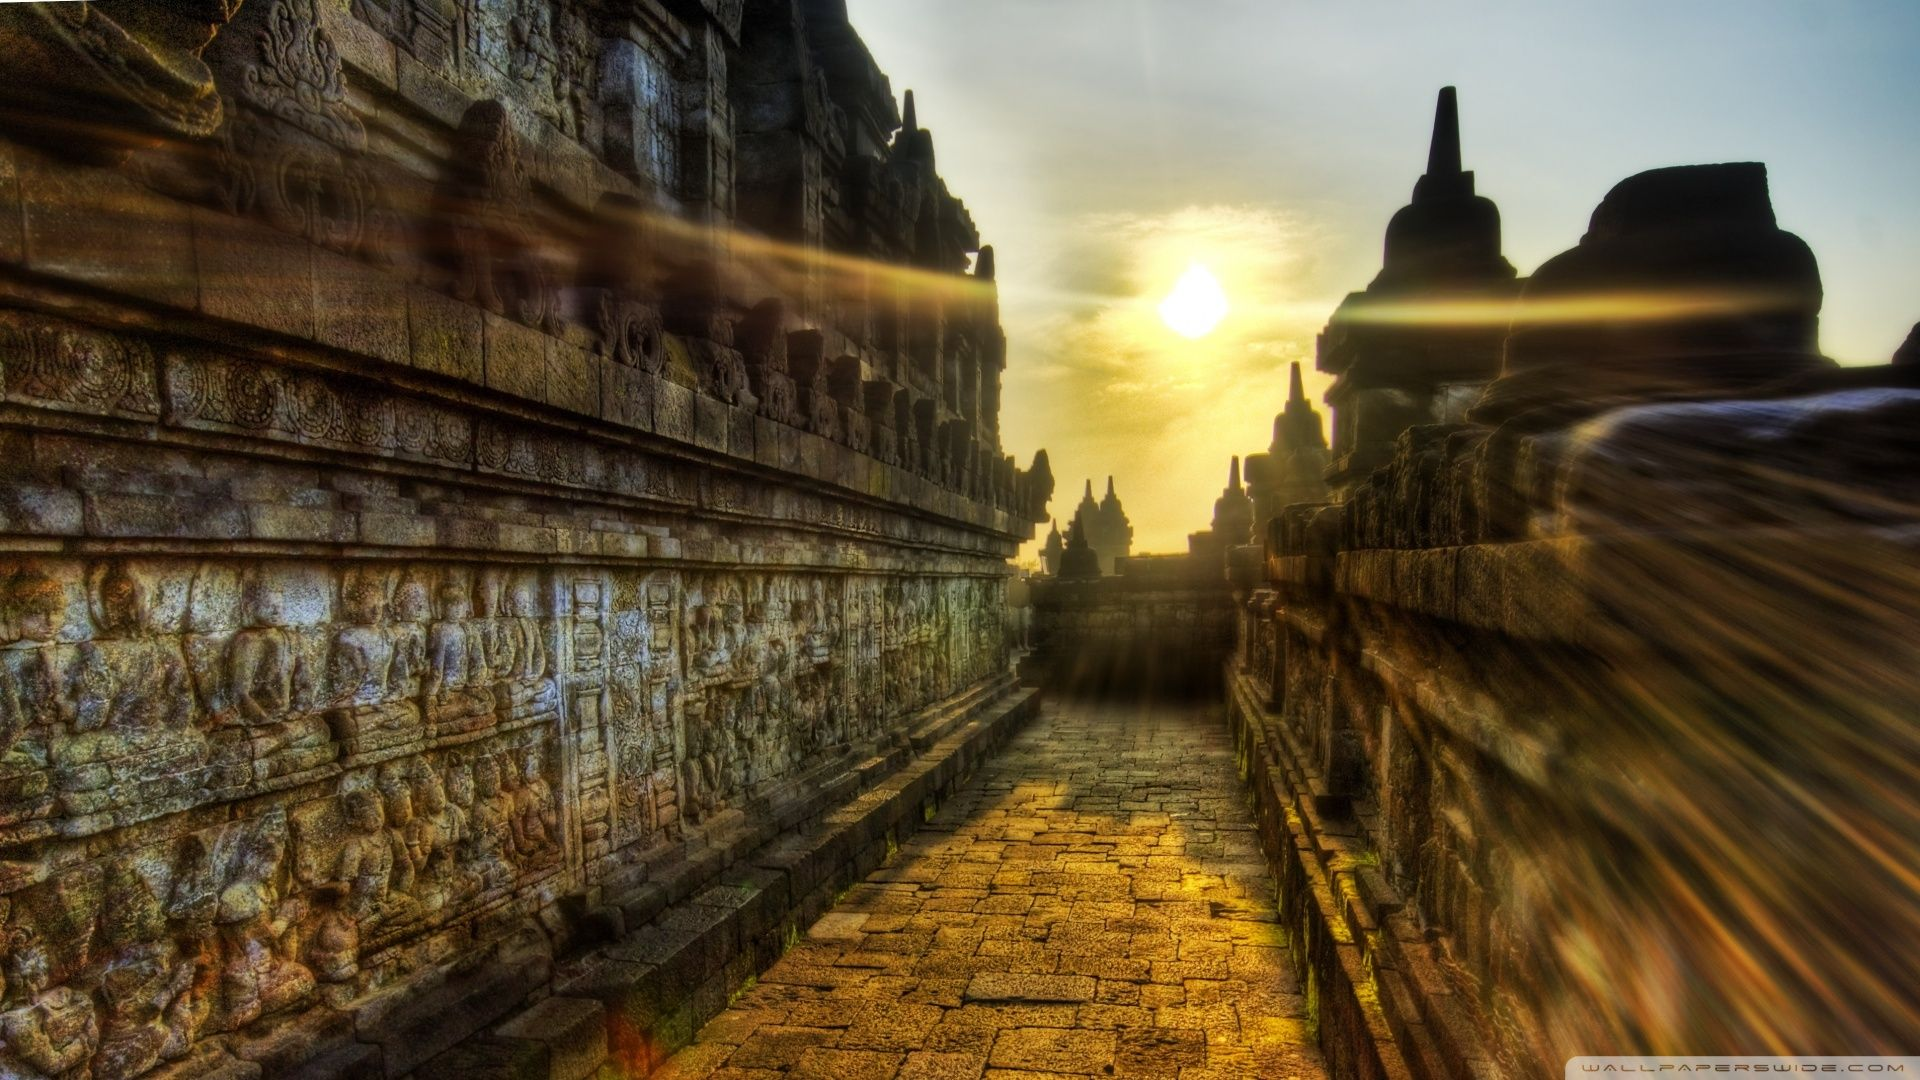 1920x1080 Download The Buddhist Temple Of Borobudur Indonesia Wallpaper ...